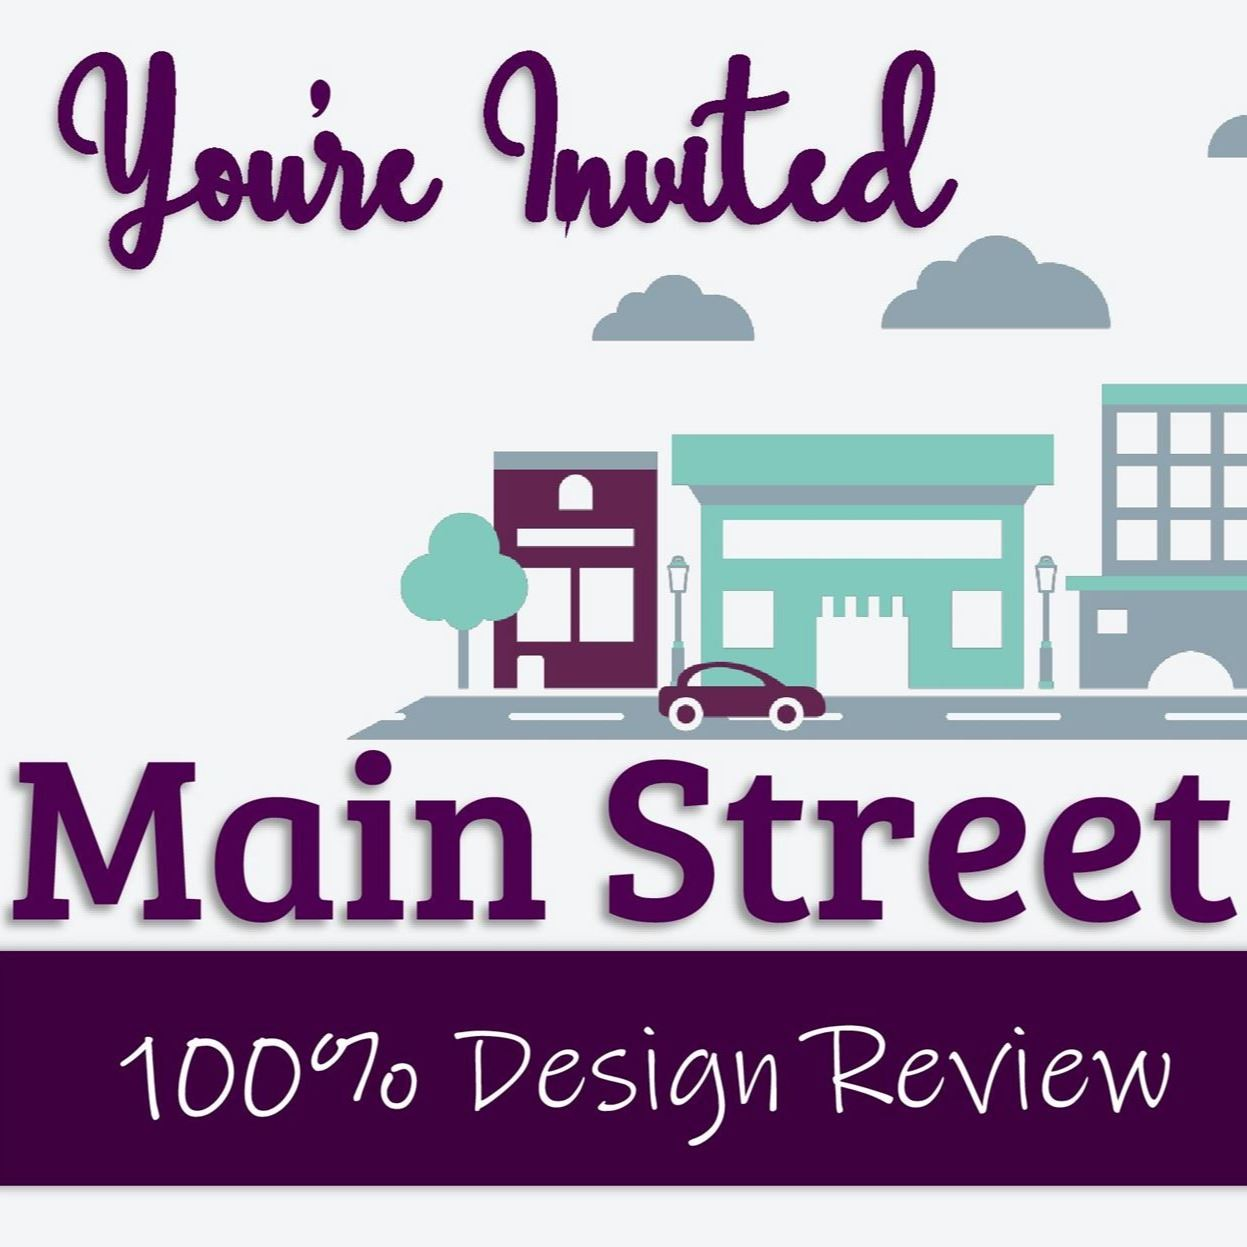 Main Street_100 Design review_1X1 COPY-page-001